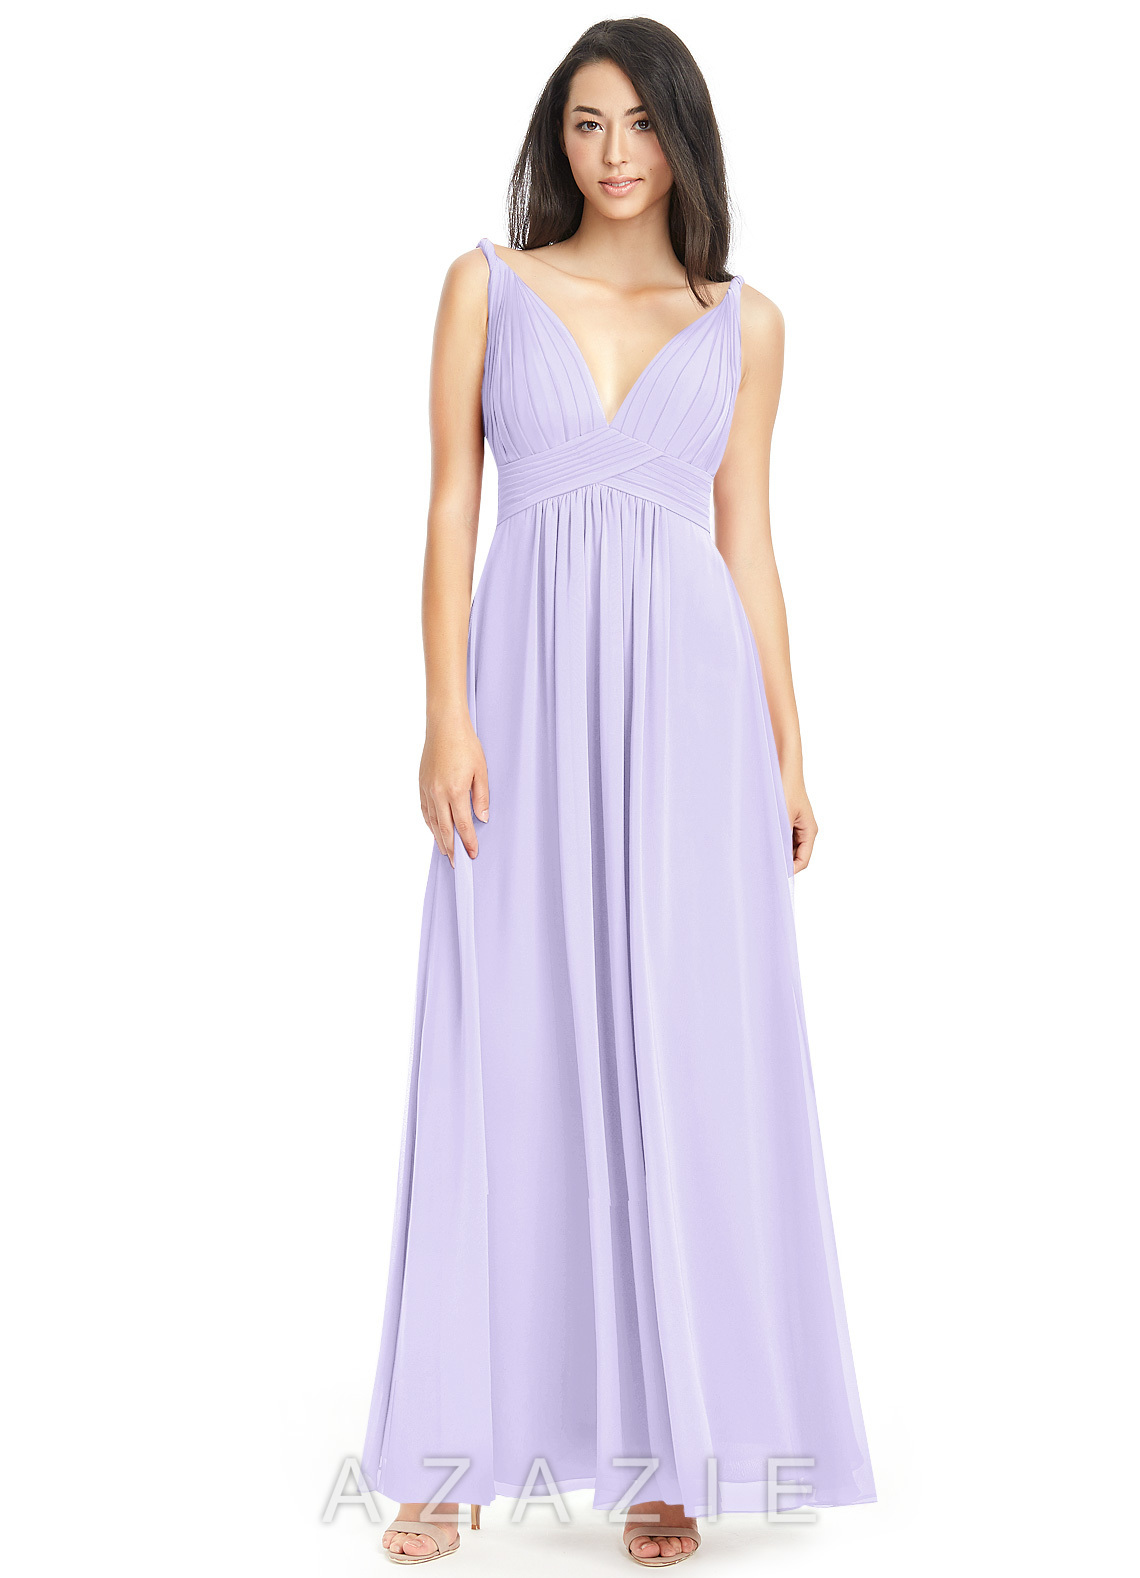 aabbb9f2090d4 Azazie Maren Bridesmaid Dress - Lilac | Azazie